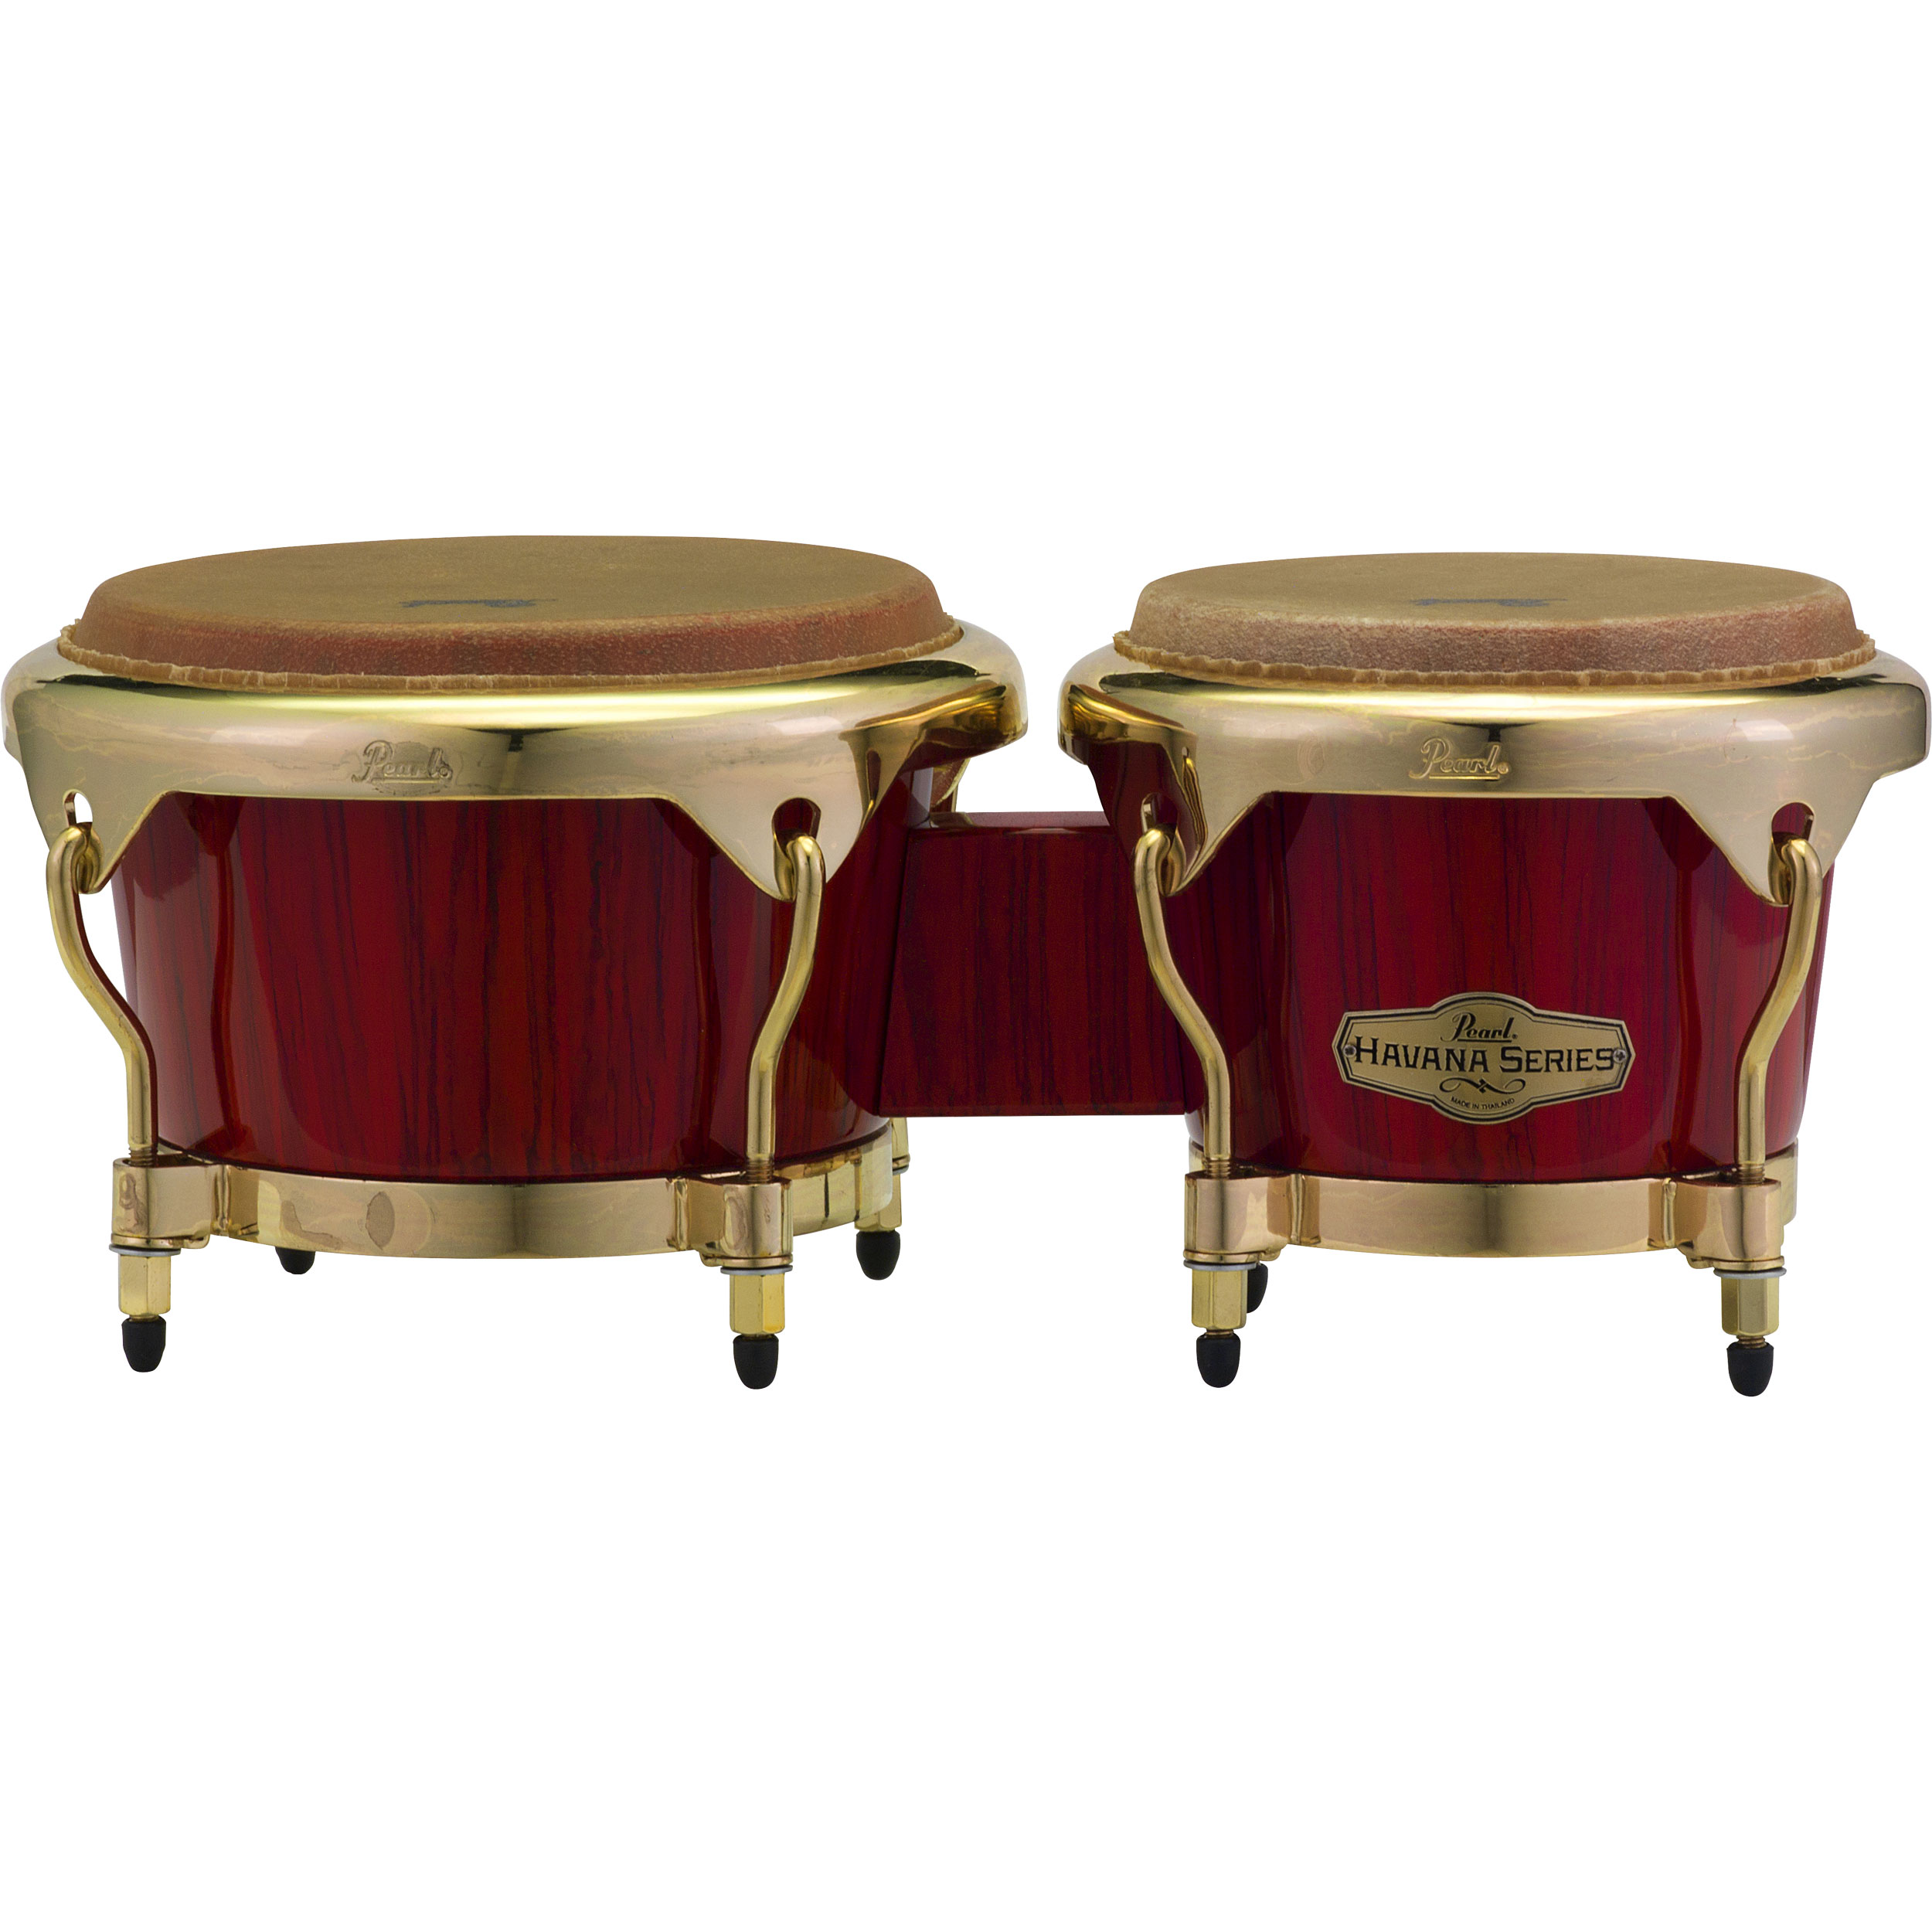 "Pearl 7"" & 9"" Havana Series Fiberglass Bongos in Red Tiger Stripe with Gold Hardware"